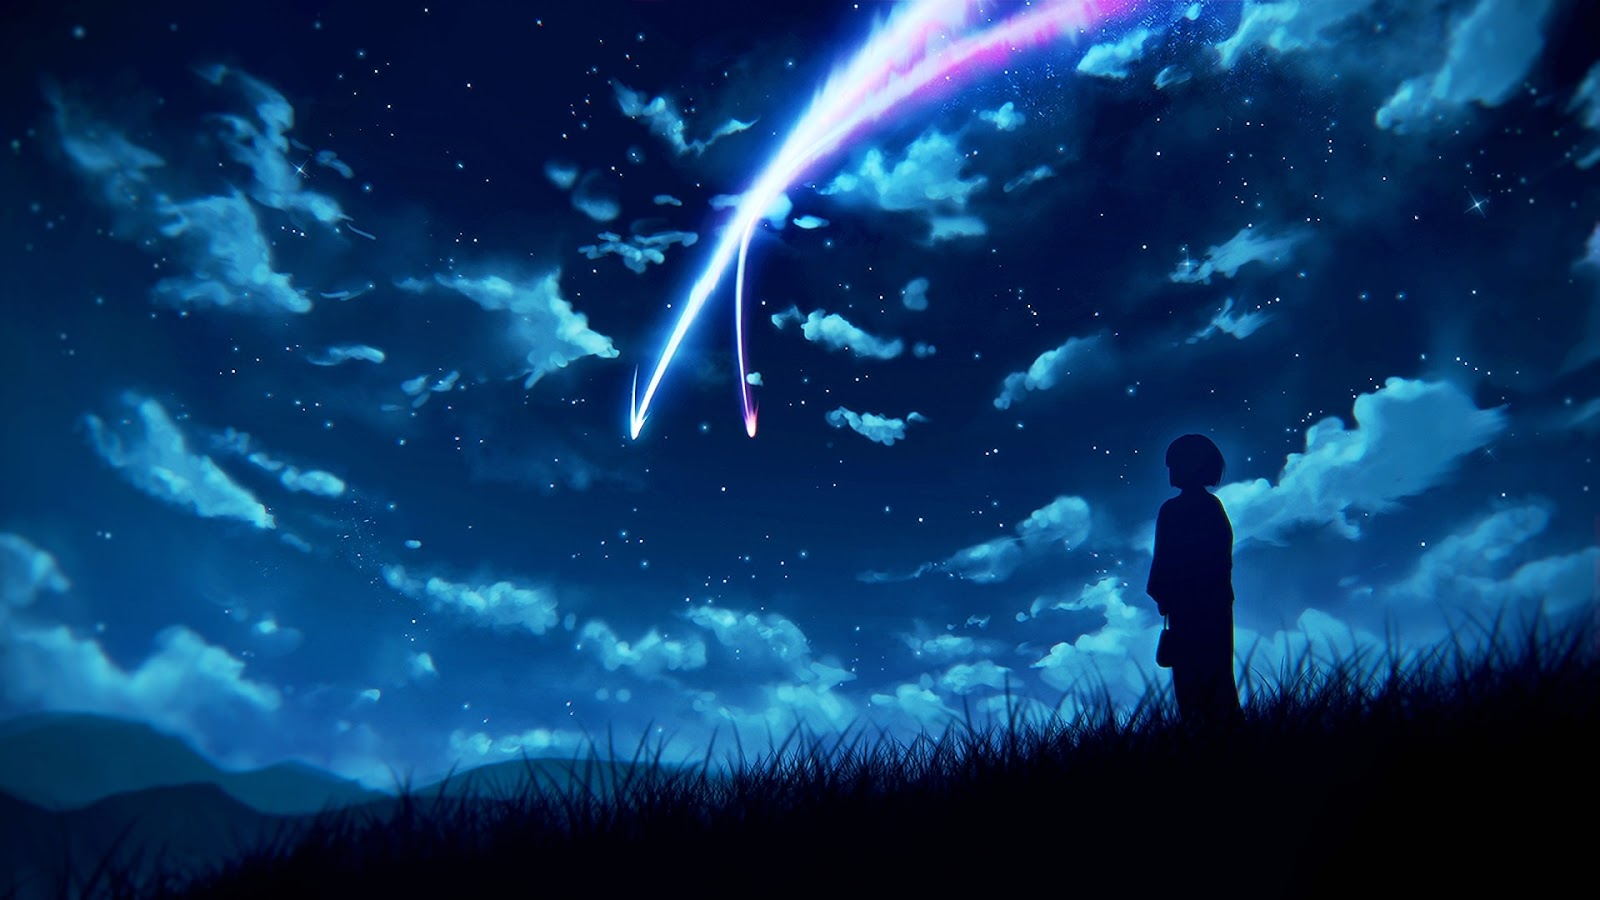 AowVN%2B%252830%2529 - [ Hình Nền ] Anime Your Name. - Kimi no Nawa full HD cực đẹp | Anime Wallpaper